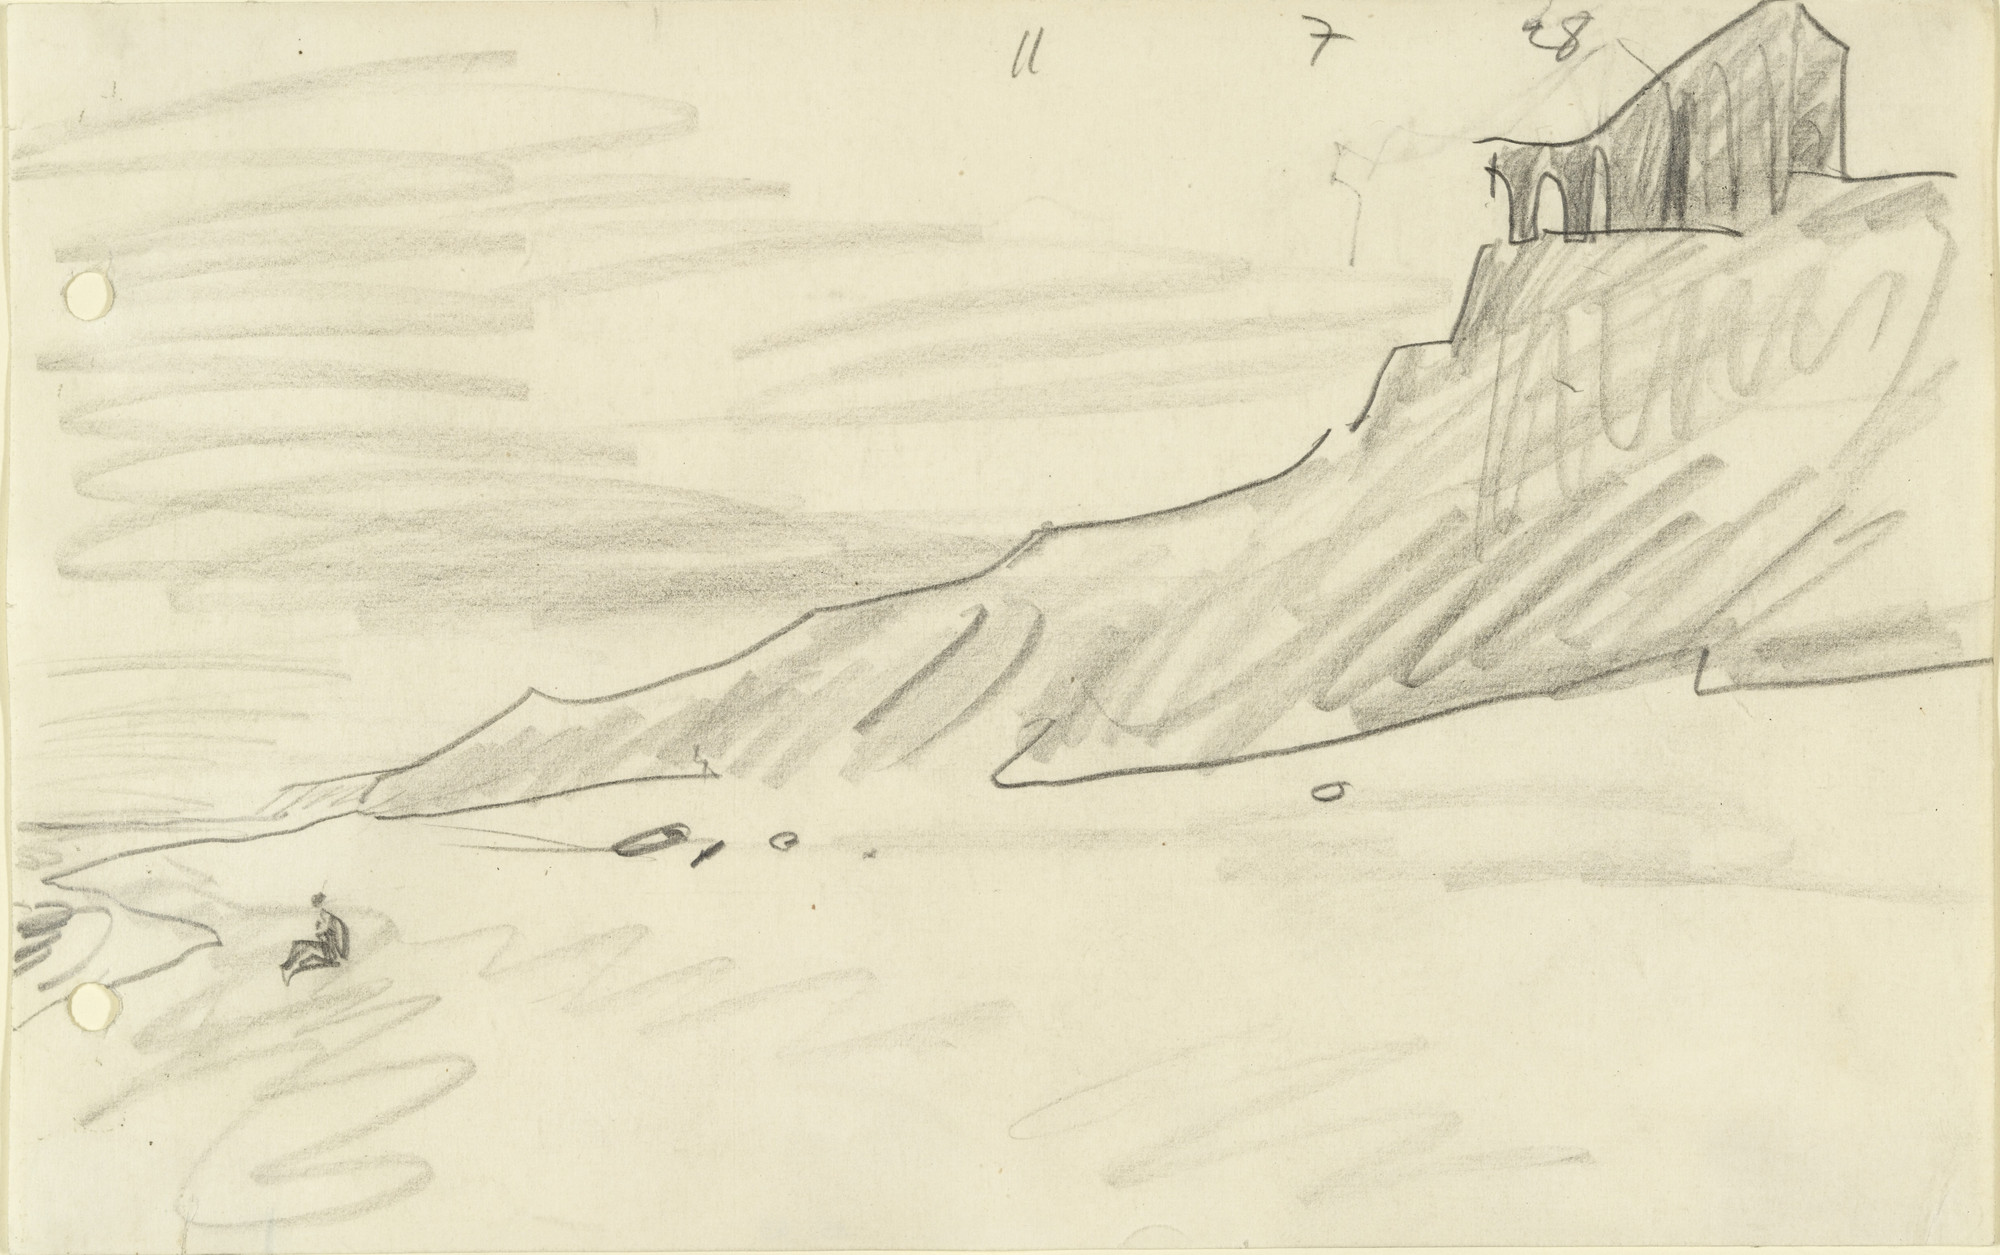 Lyonel Feininger. Cliffs and Sea with Ruins. 1928